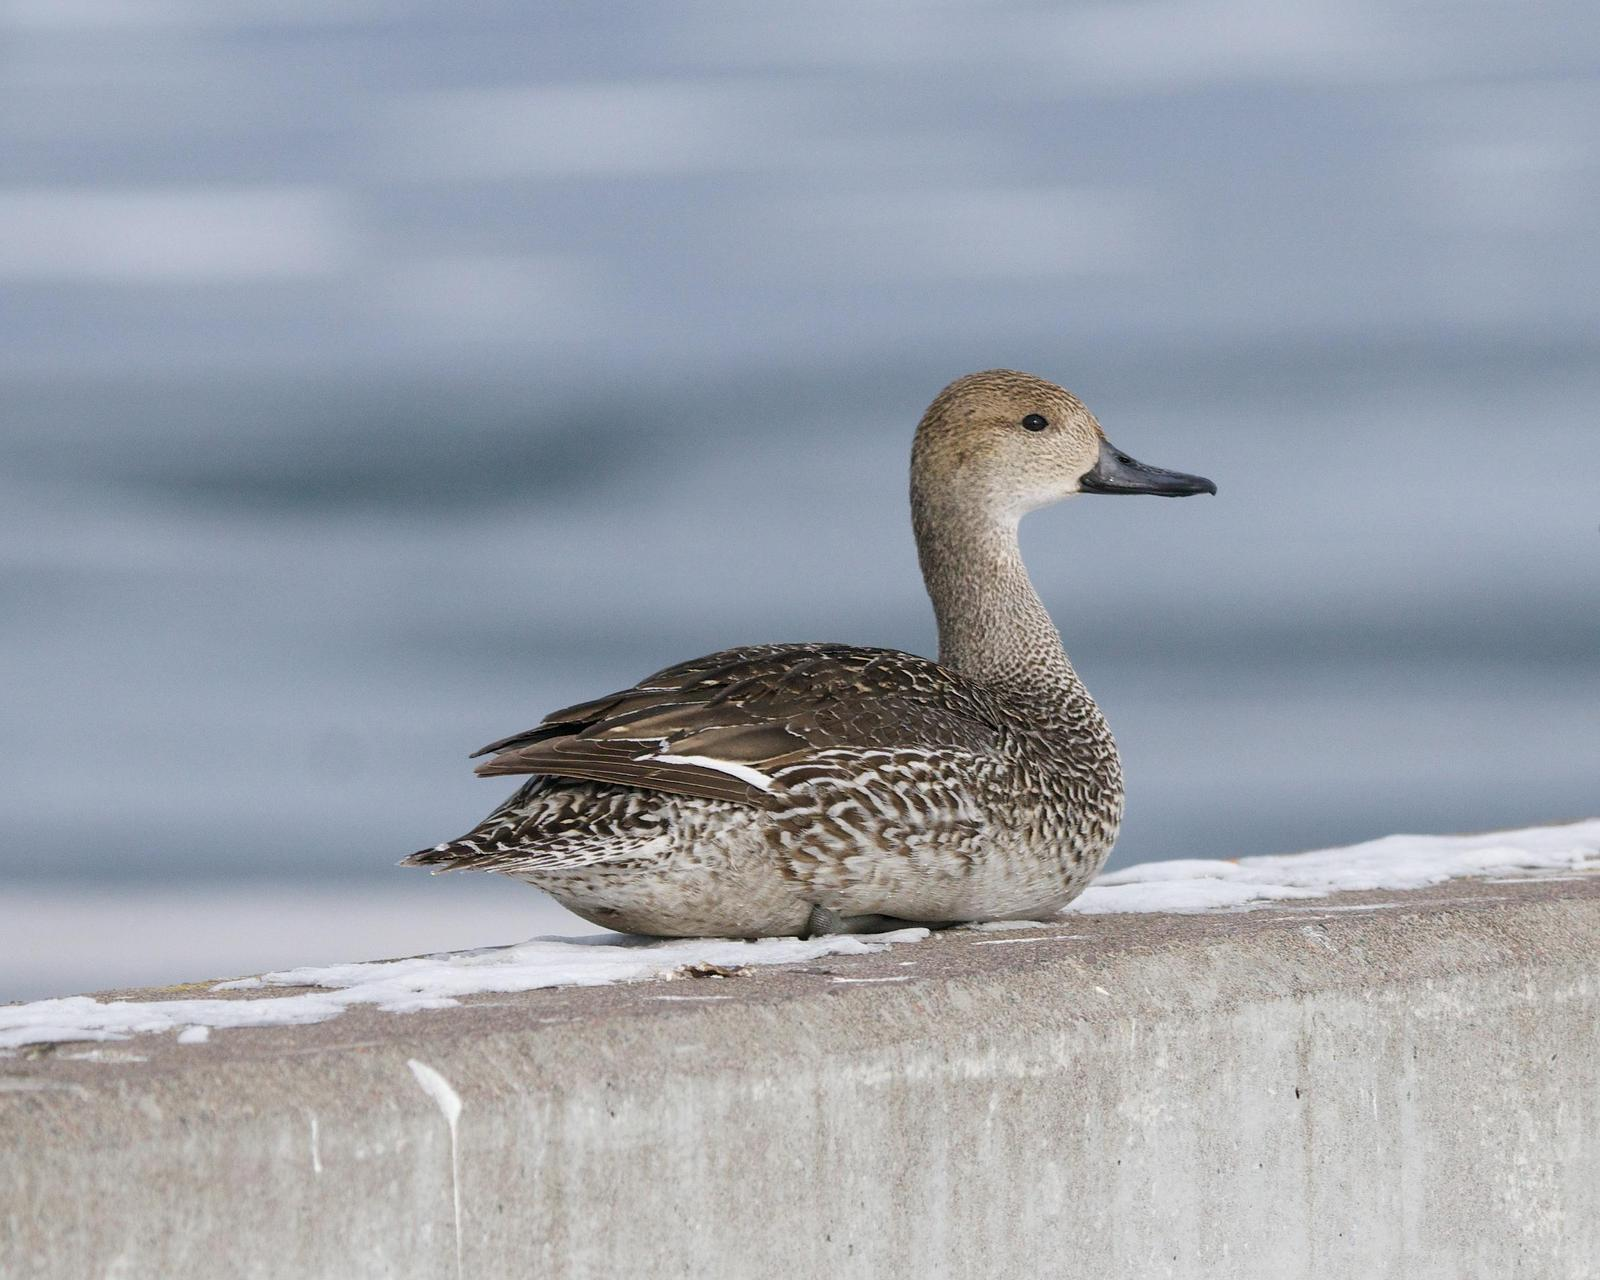 Northern Pintail Photo by Gerald Hoekstra